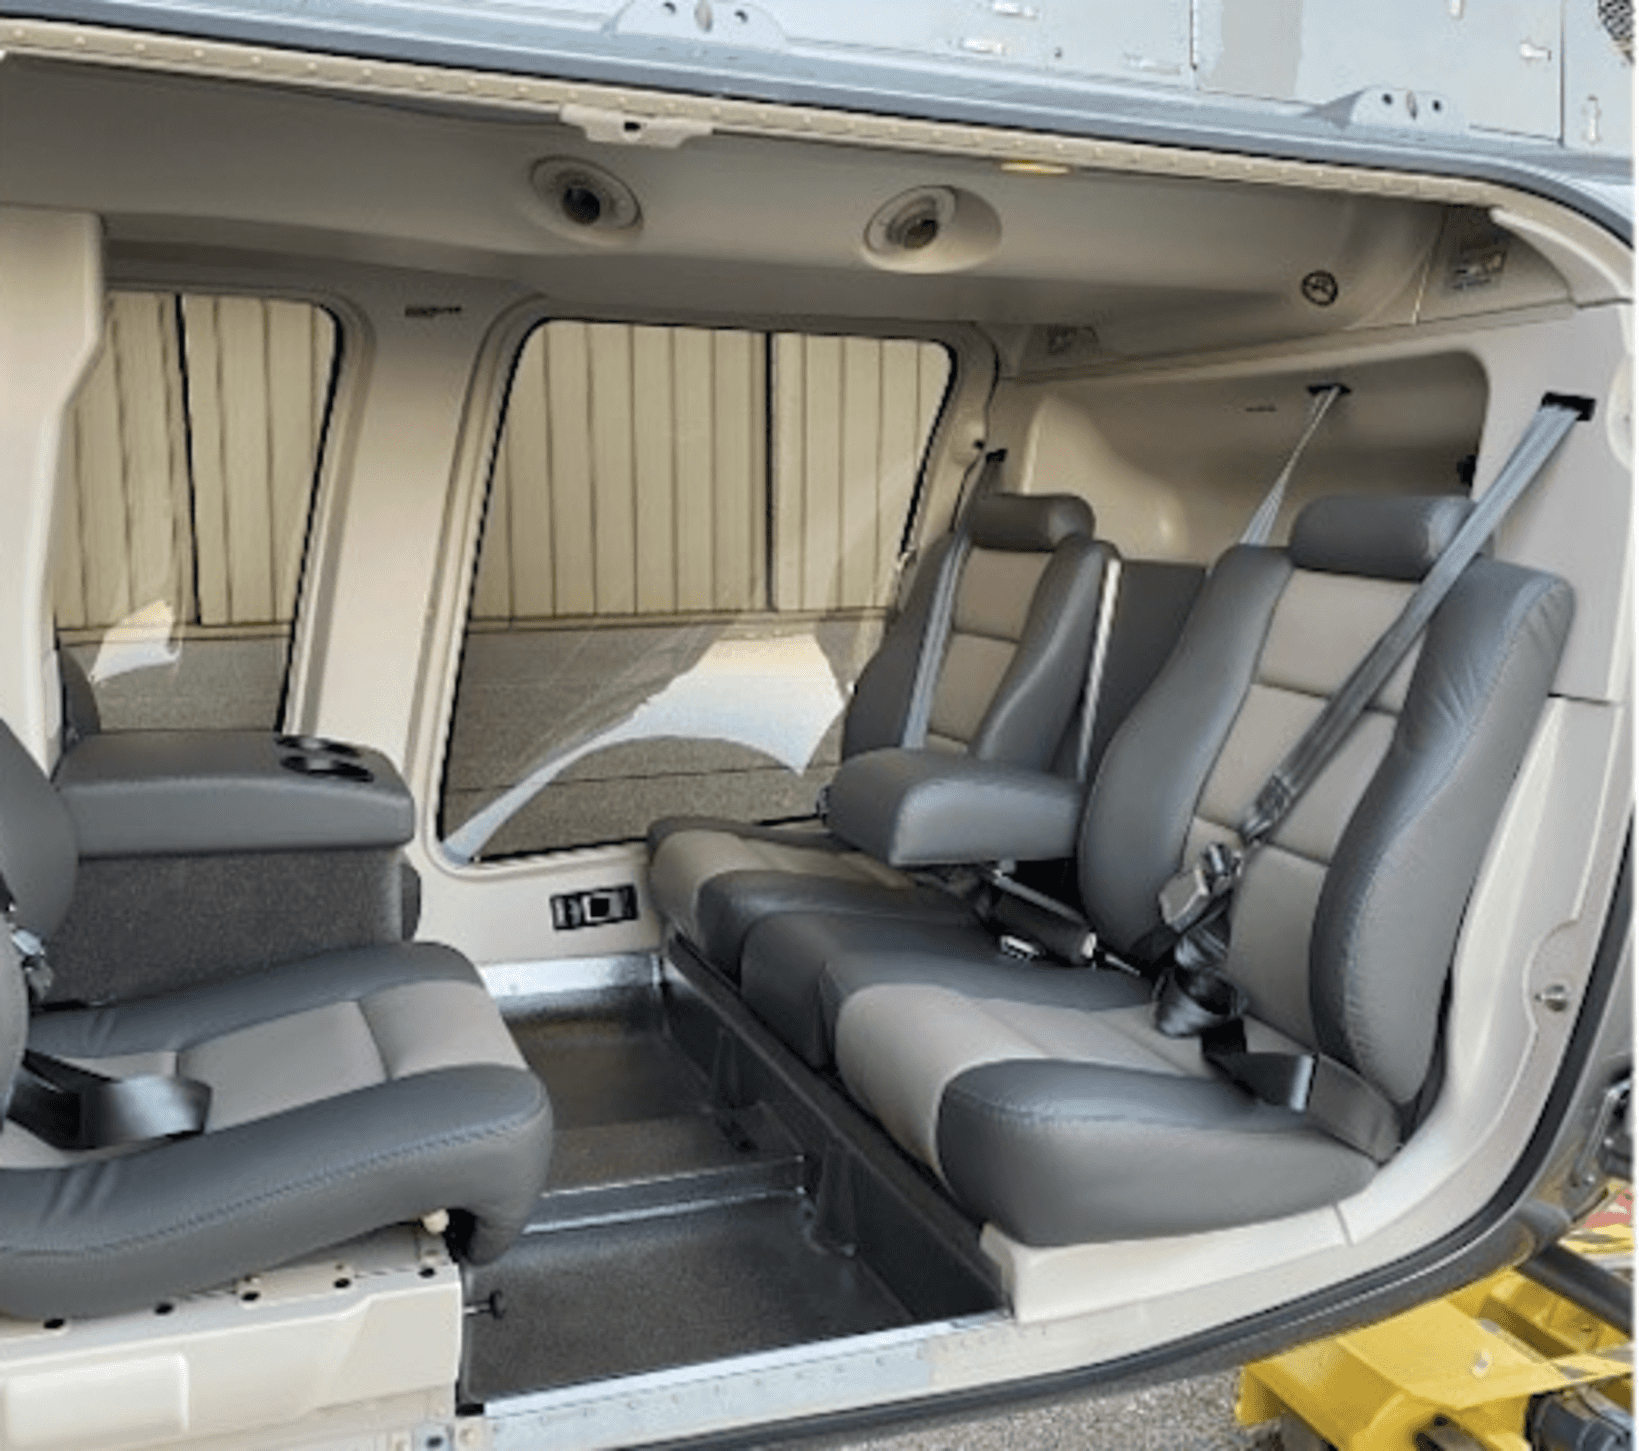 Bell 407 GXi Interior